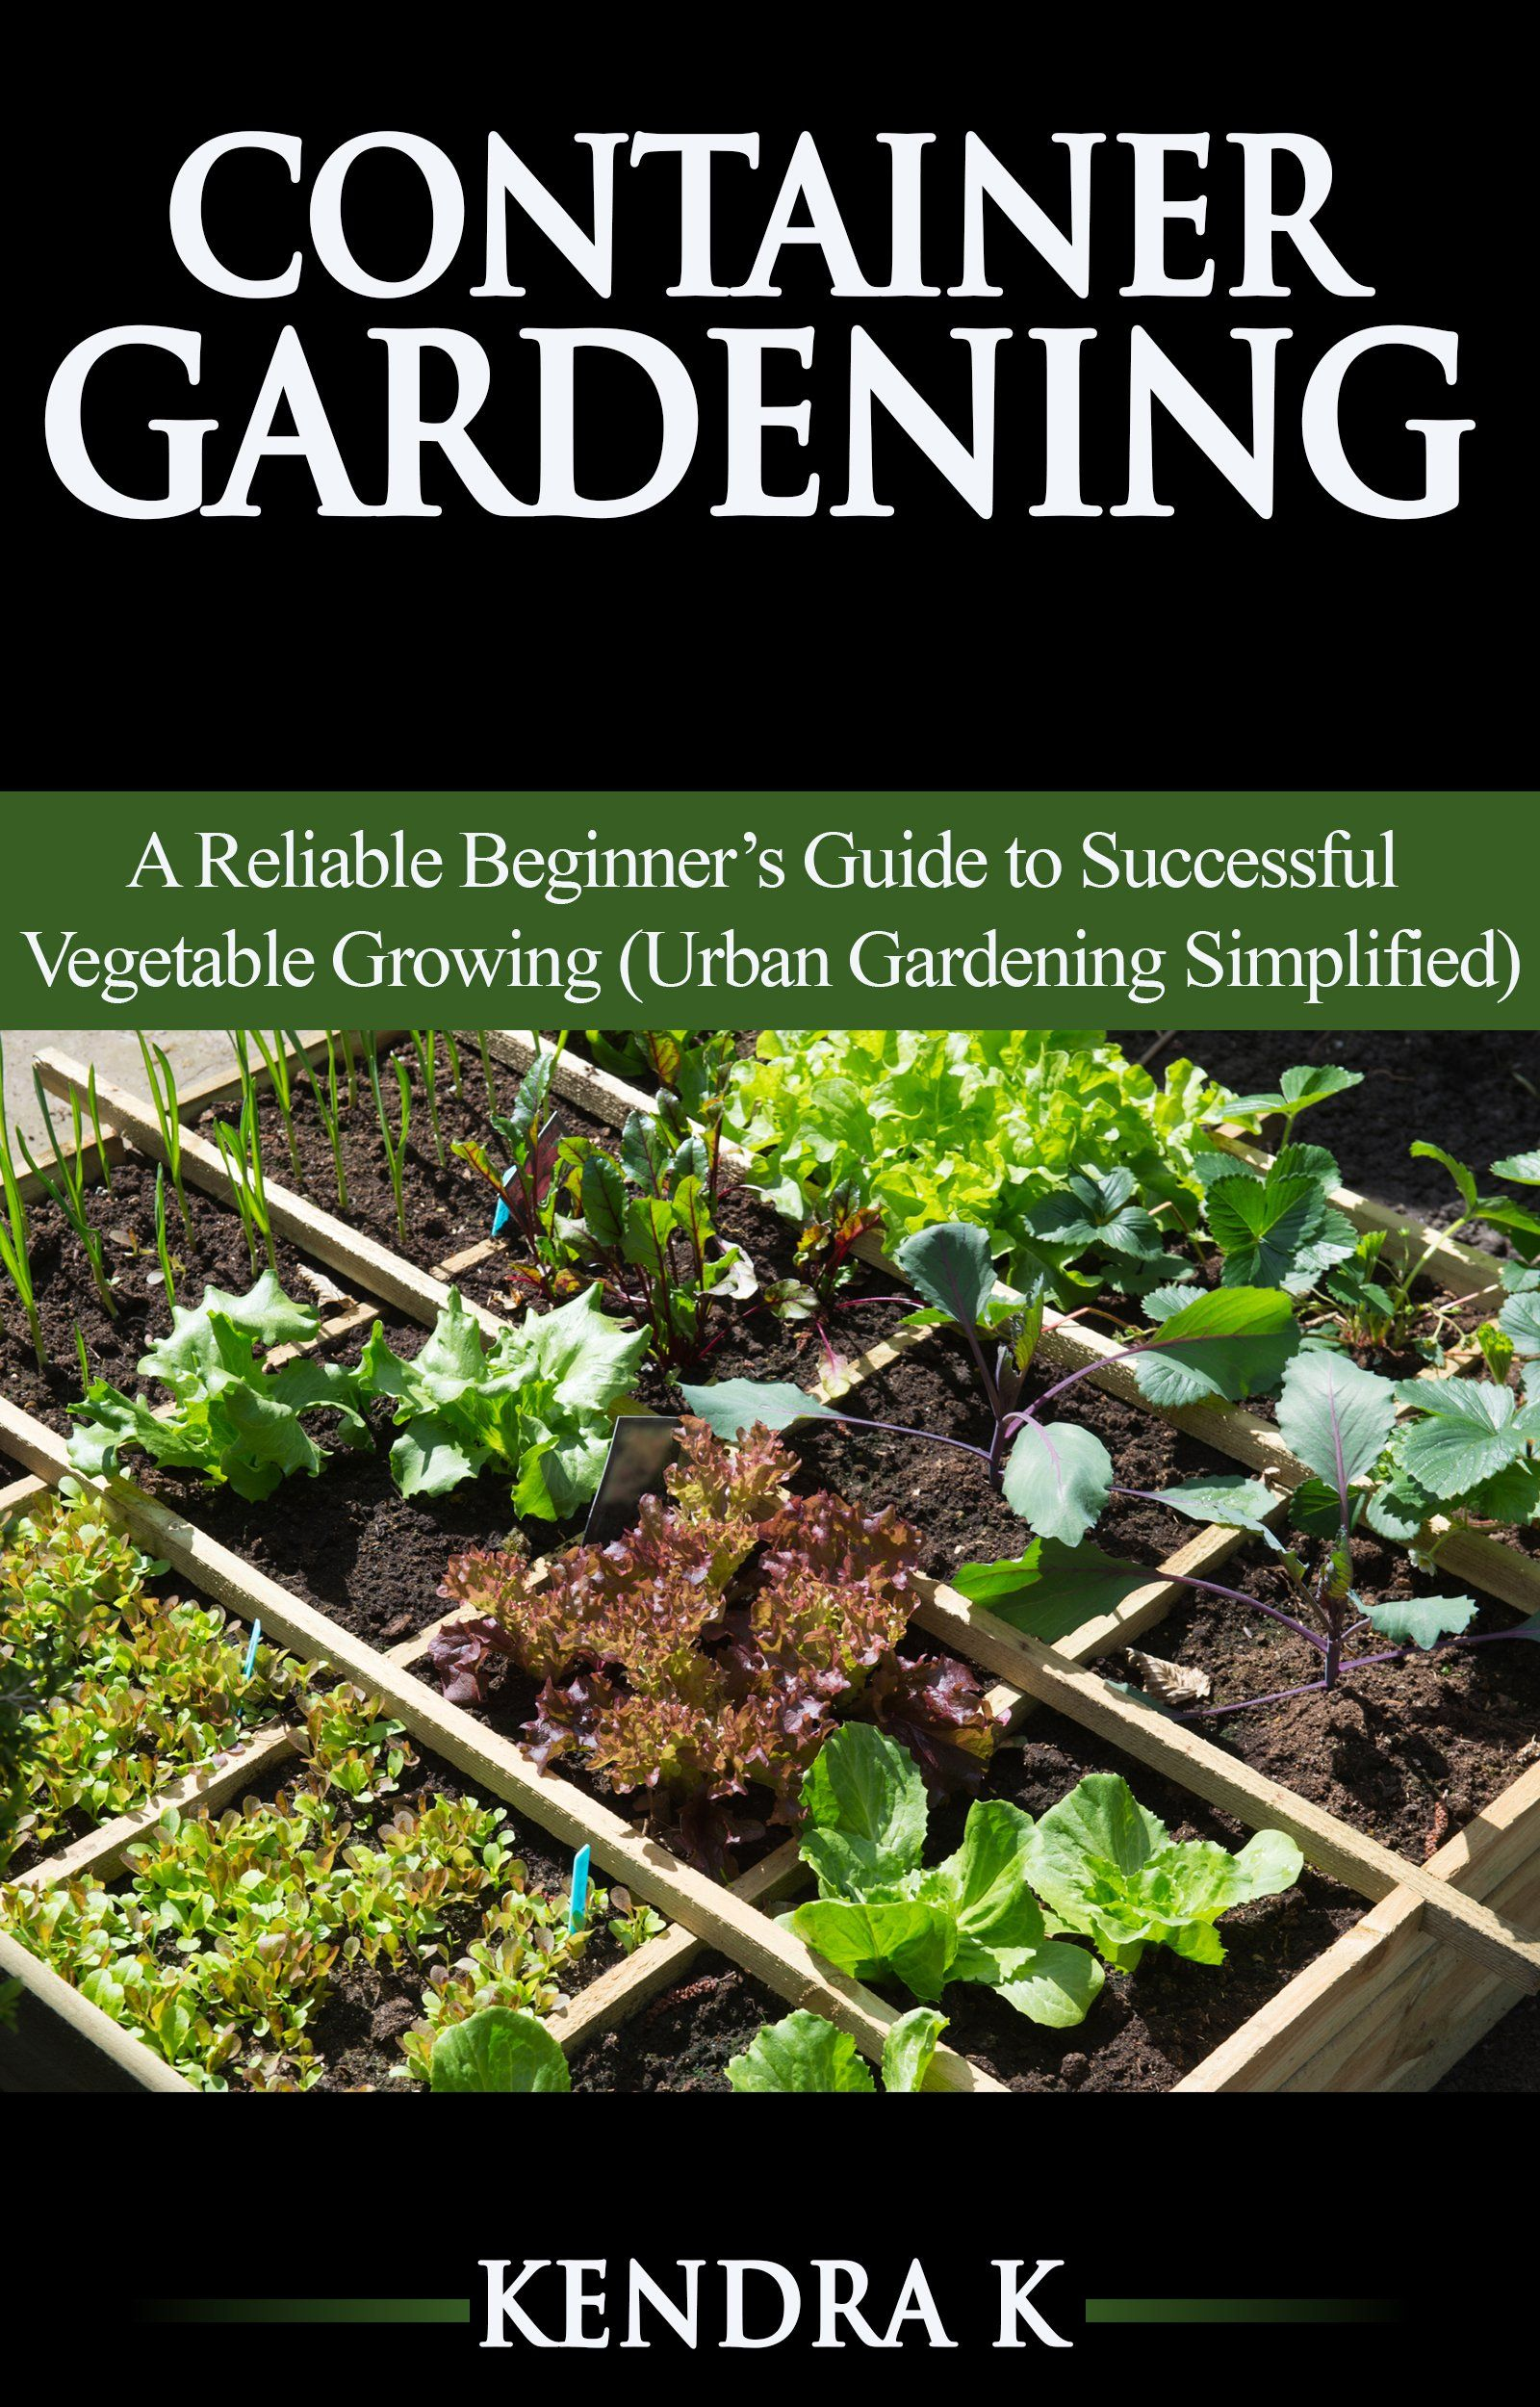 Container Gardening A Reliable Beginner s Guide to Successful Ve able Growing Urban Gardening Simplified